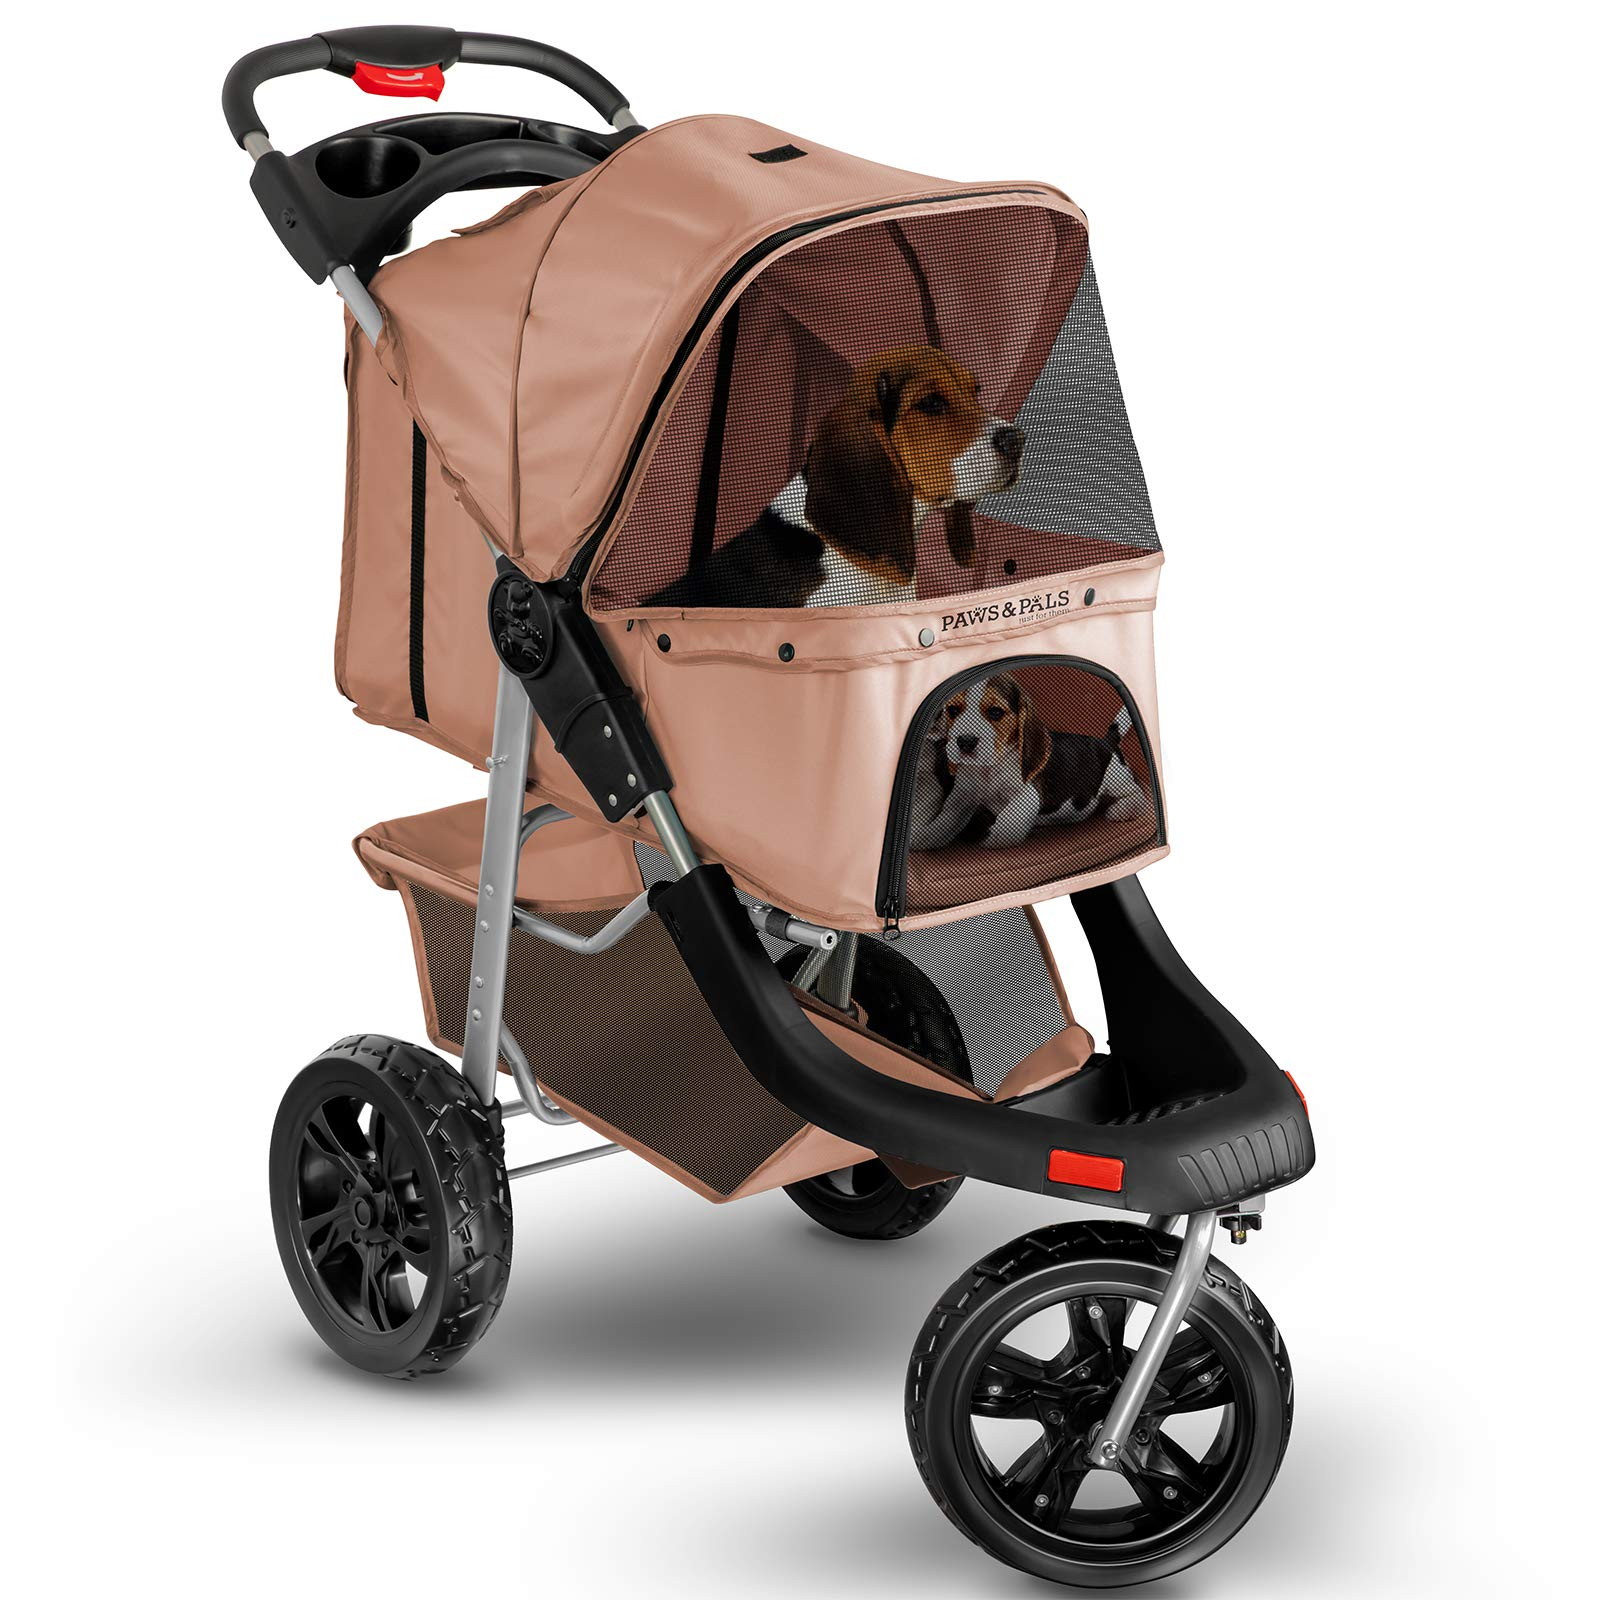 Dog Stroller for Cat and Dog - Deluxe 3-Wheel Pet Strollers for Small and Medium Cats, Dogs, Puppy - Beige by Paws & Pals